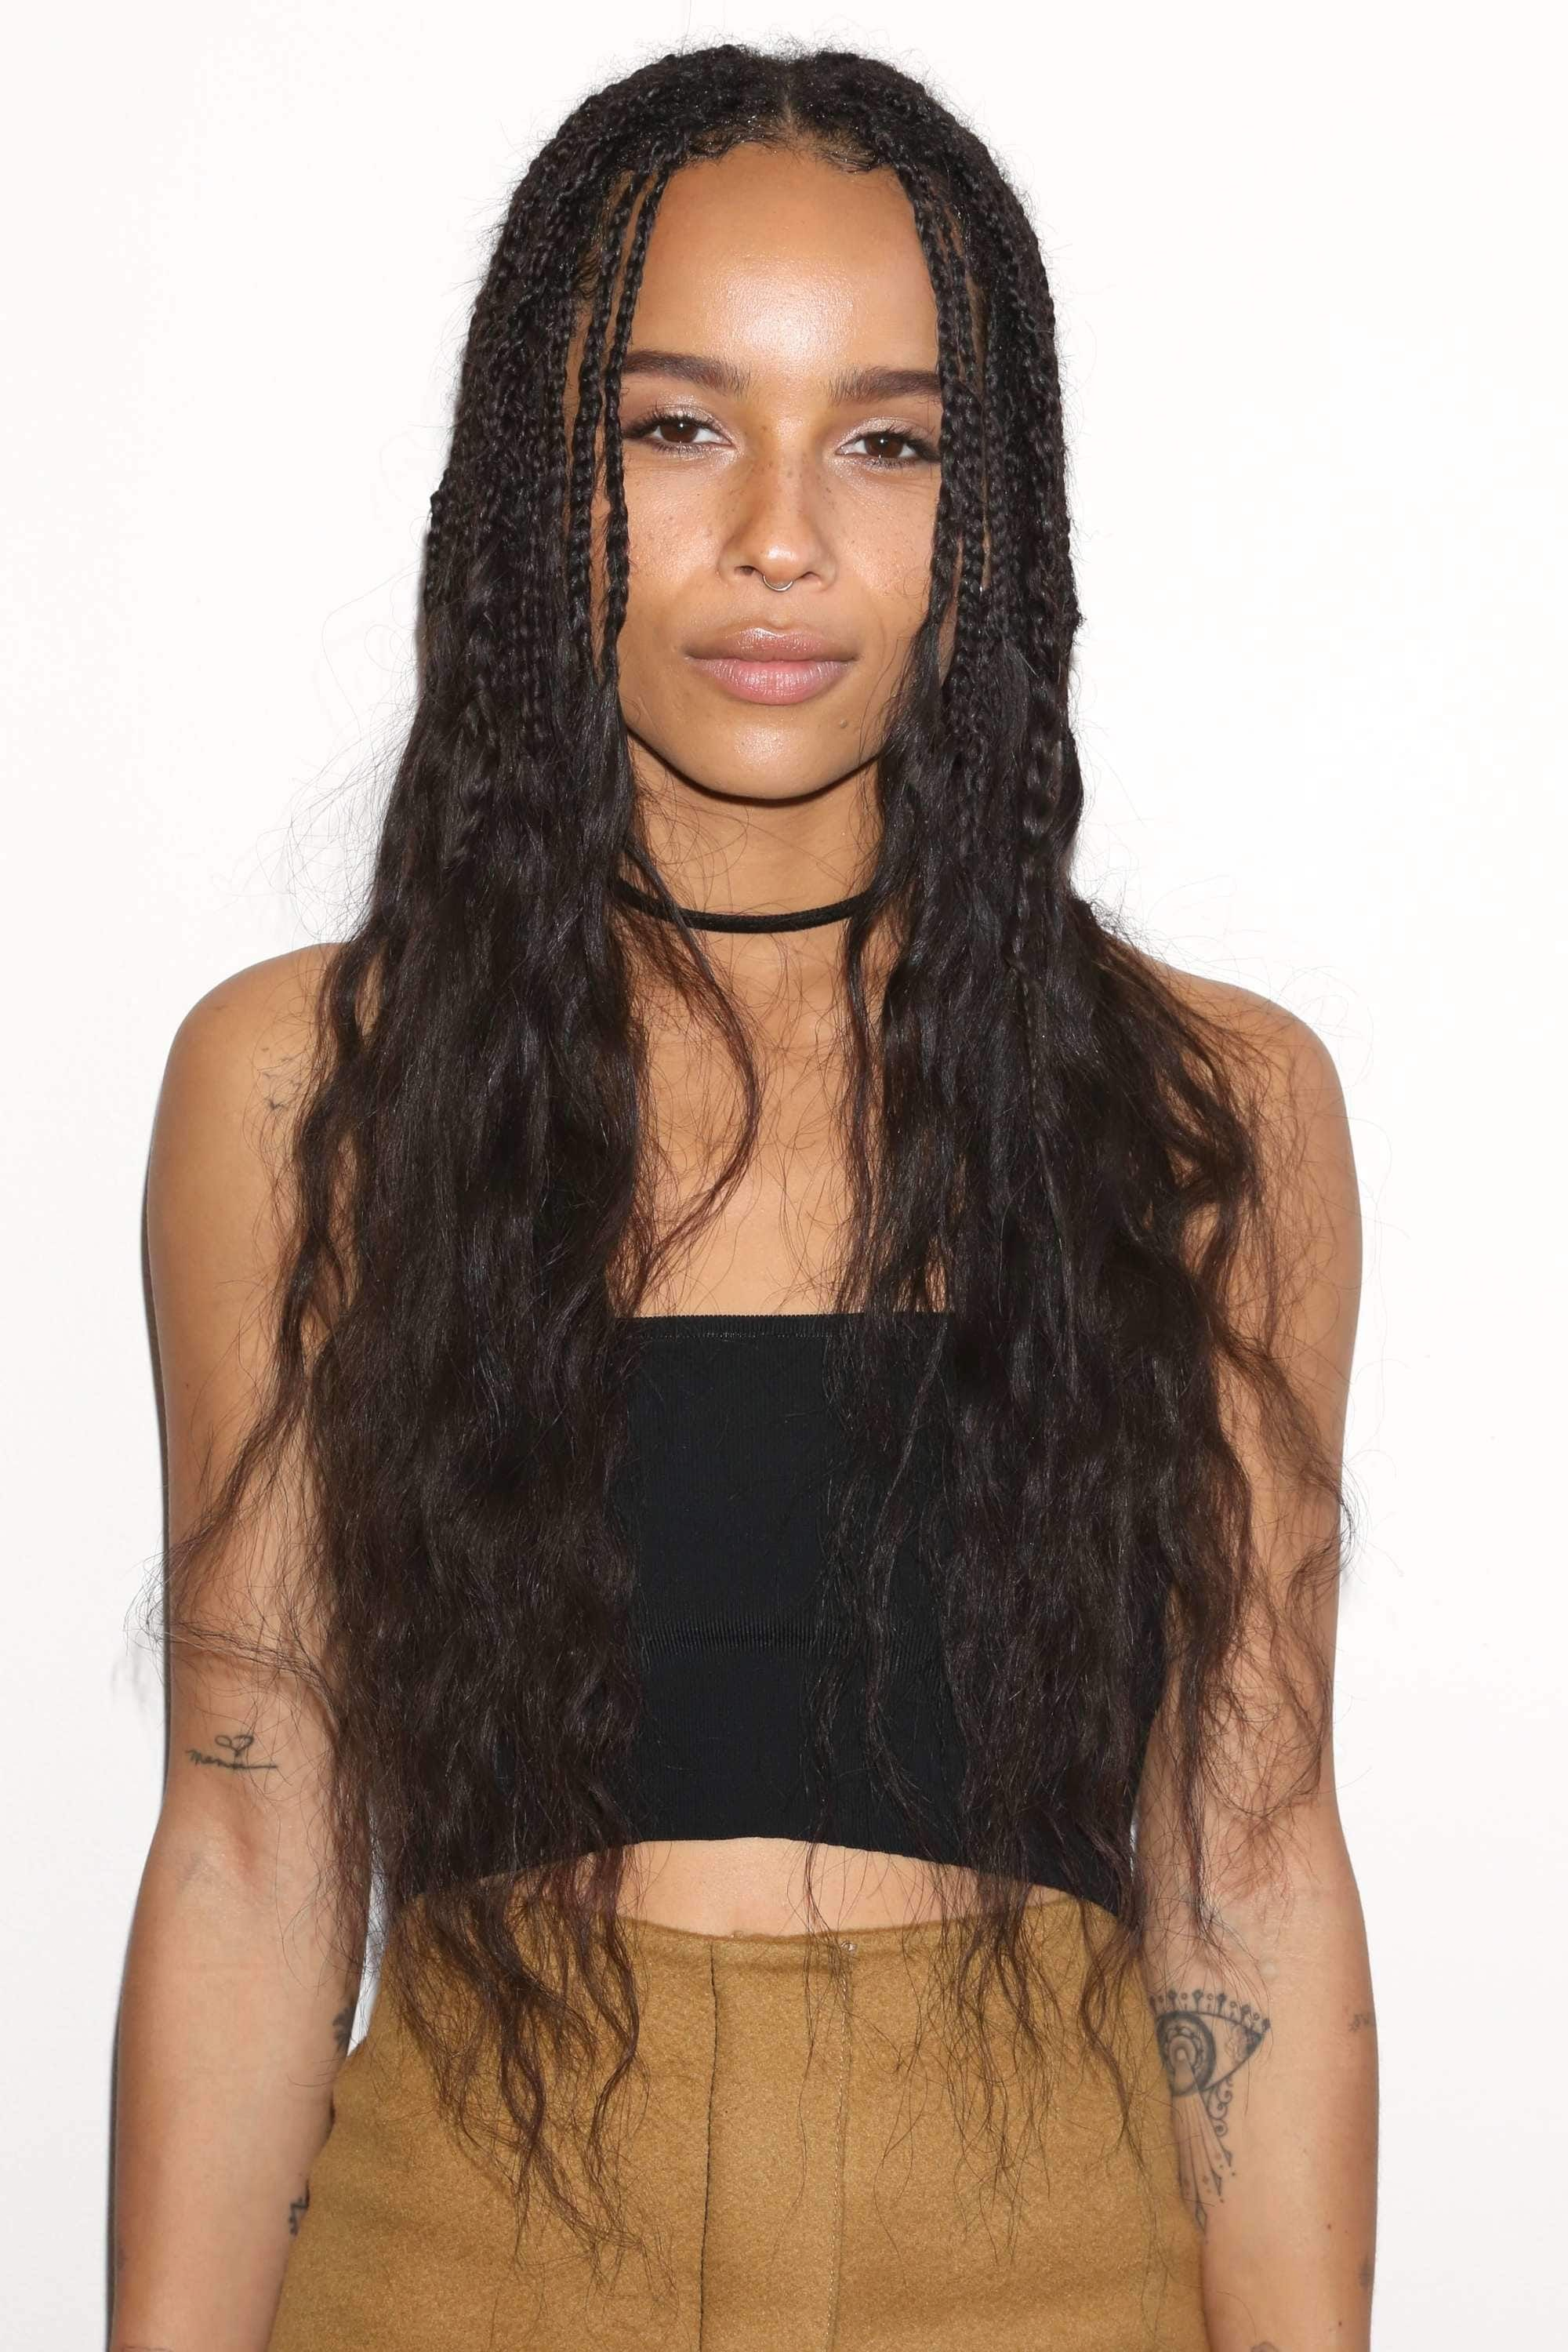 Coiffure Zoe Kravitz Close Up Shot Of Zoe Kravitz With Curly Box Braids Ends